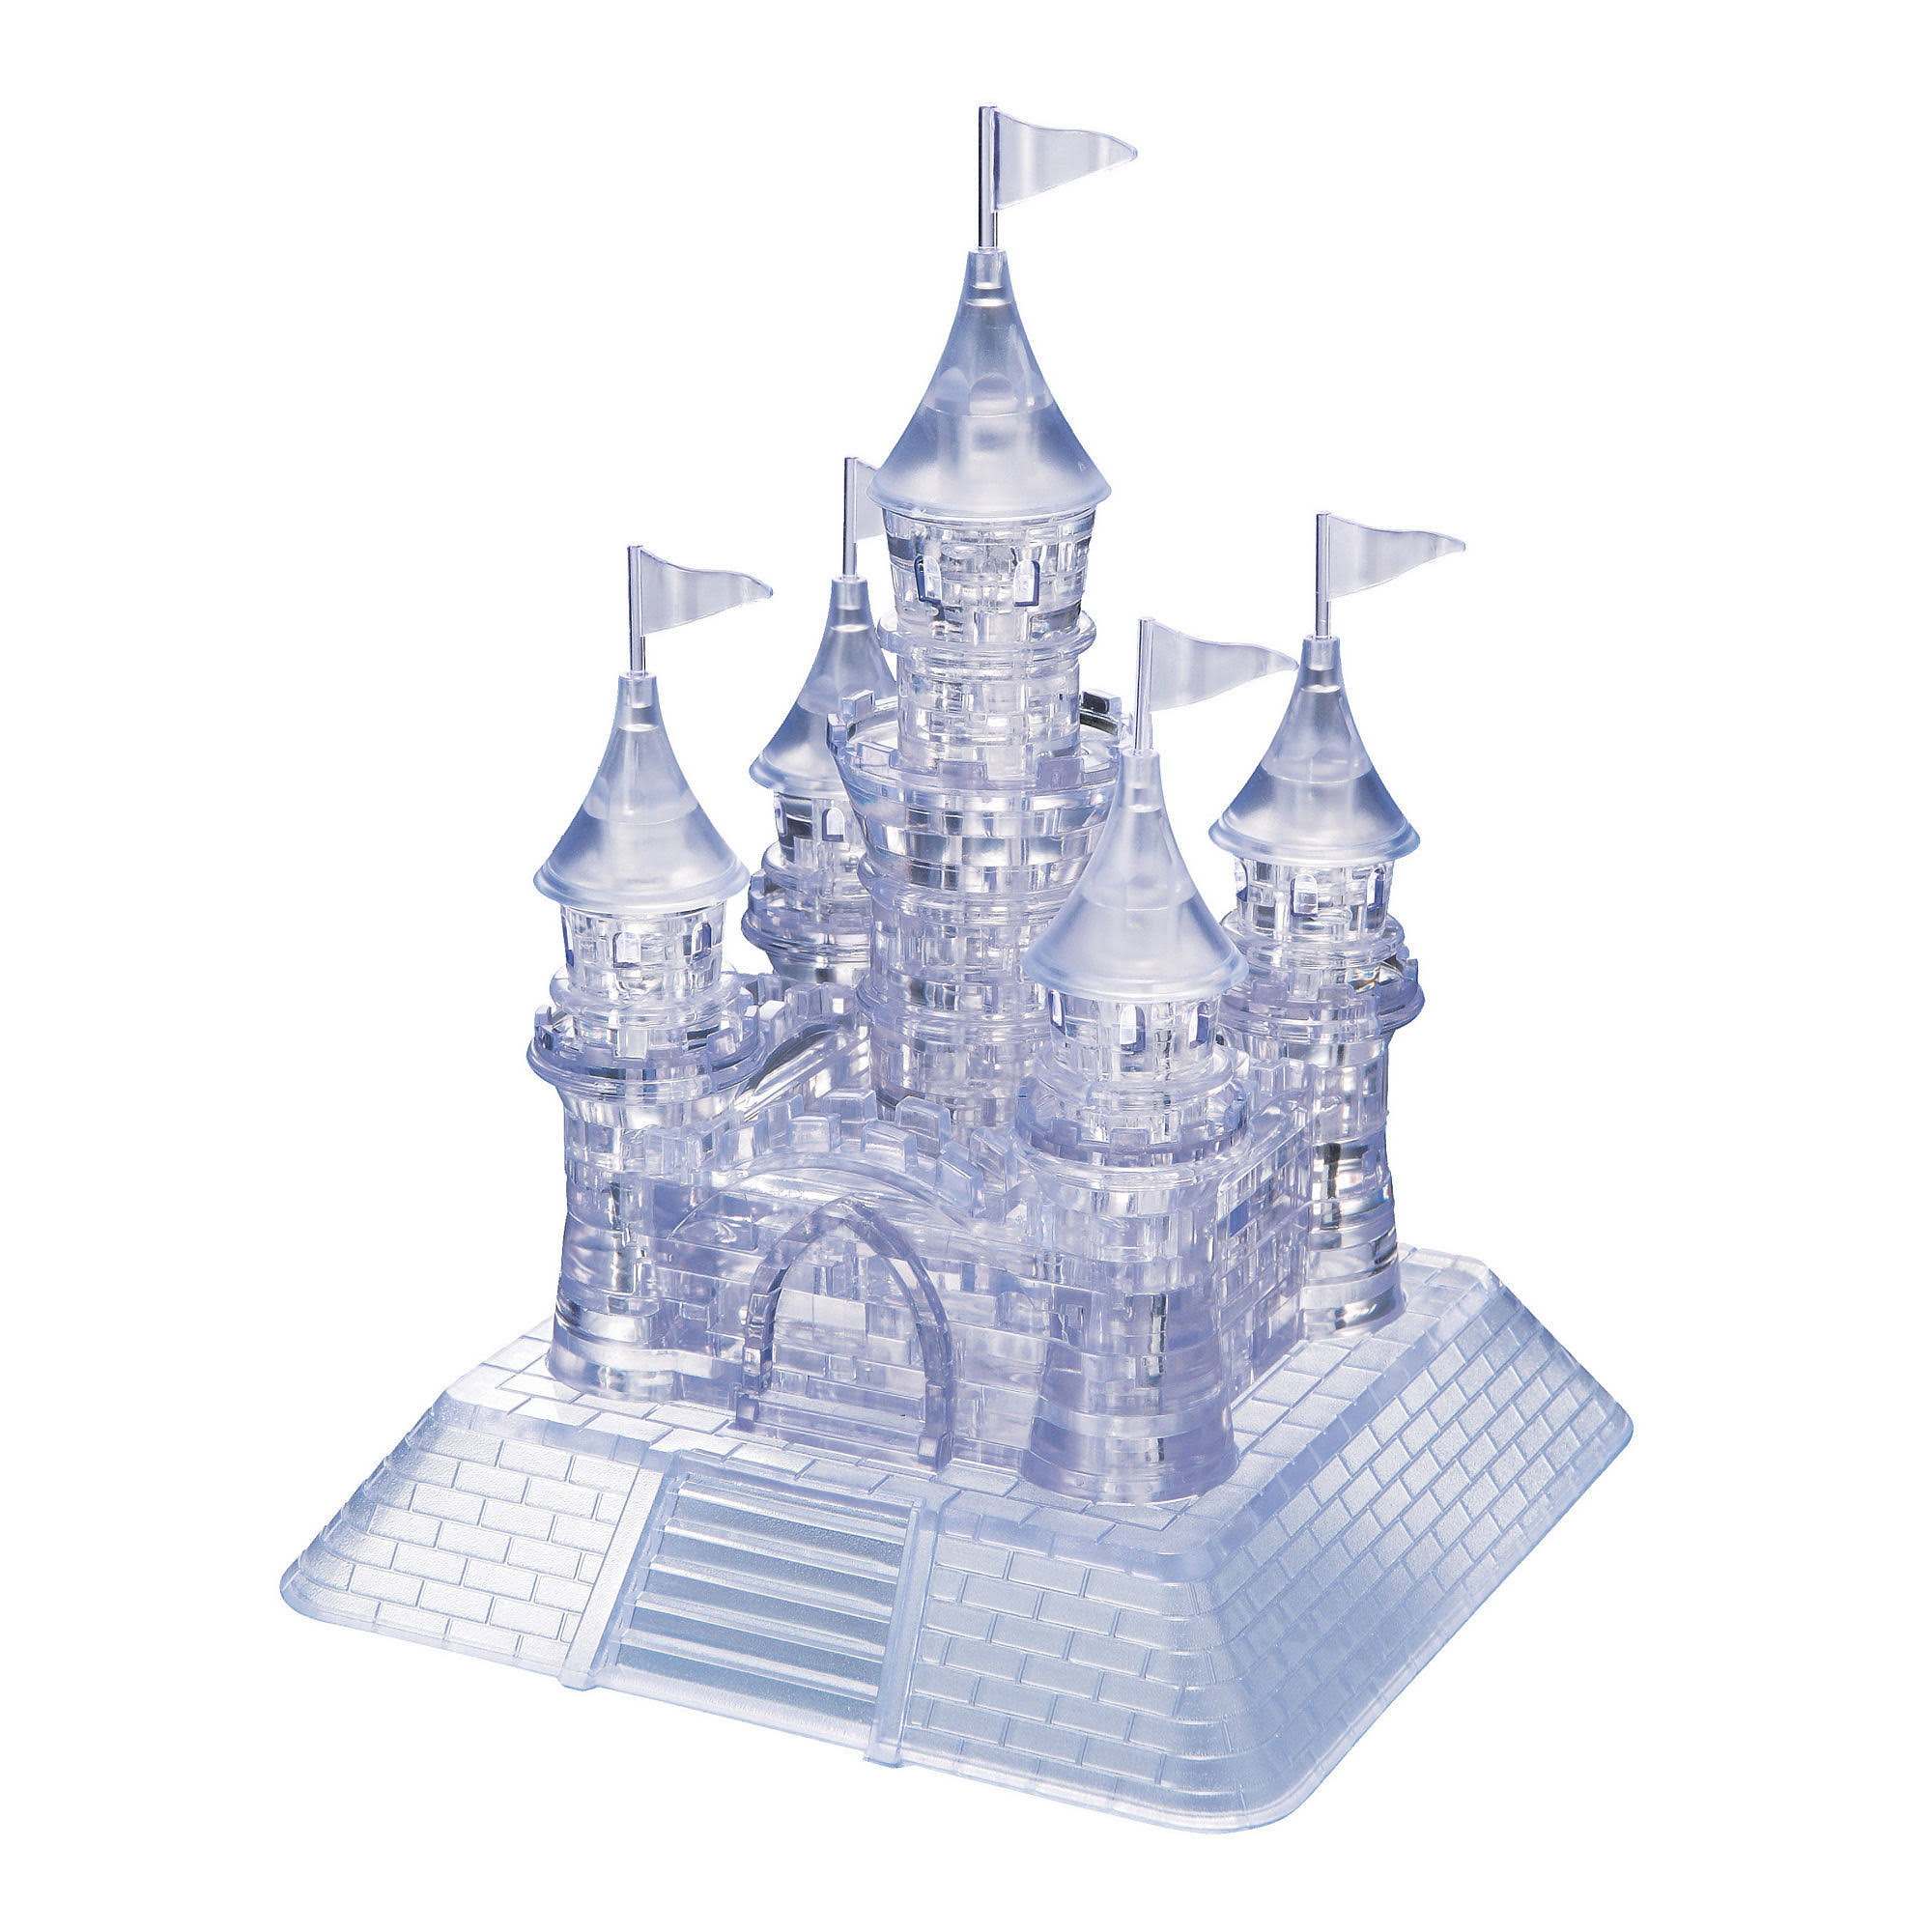 BePuzzled 3D Crystal Puzzle - Castle, 105pcs